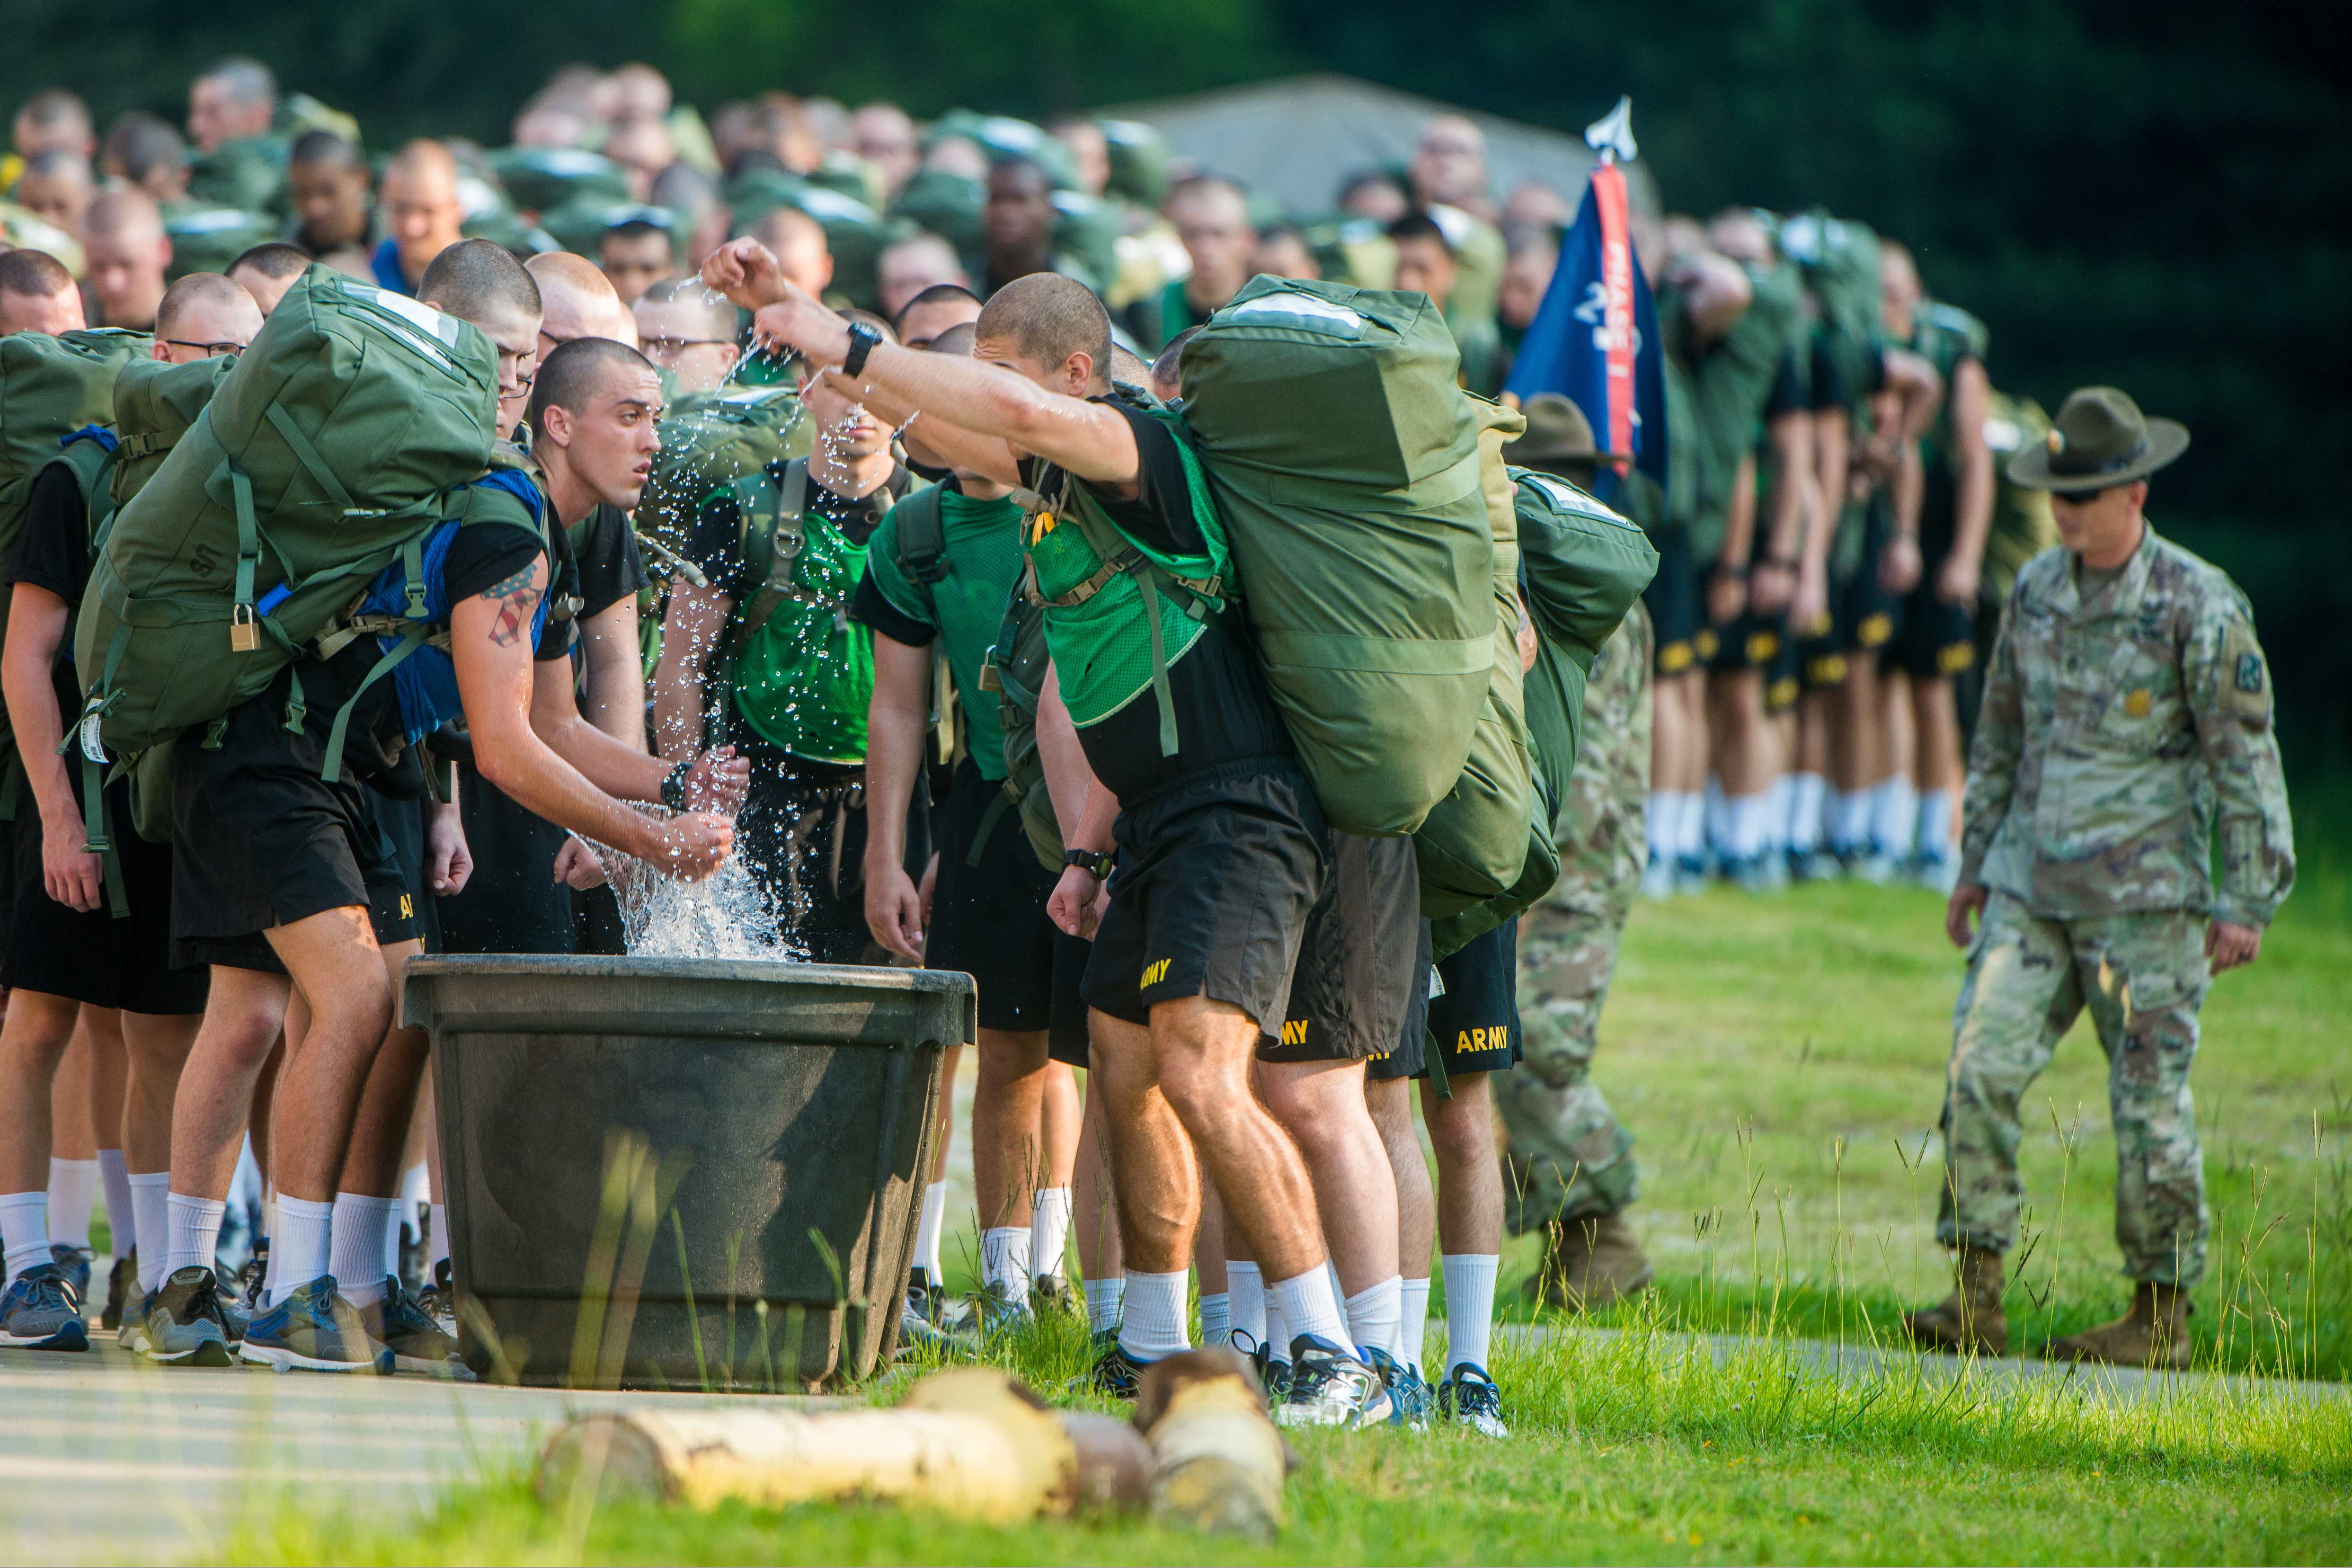 Caption: Soldiers at Fort Benning, Ga. use immersion troughs filled with ice and water to cool off during training in this 2018 photo., Credit:  Patrick A. Albright / U.S. Army